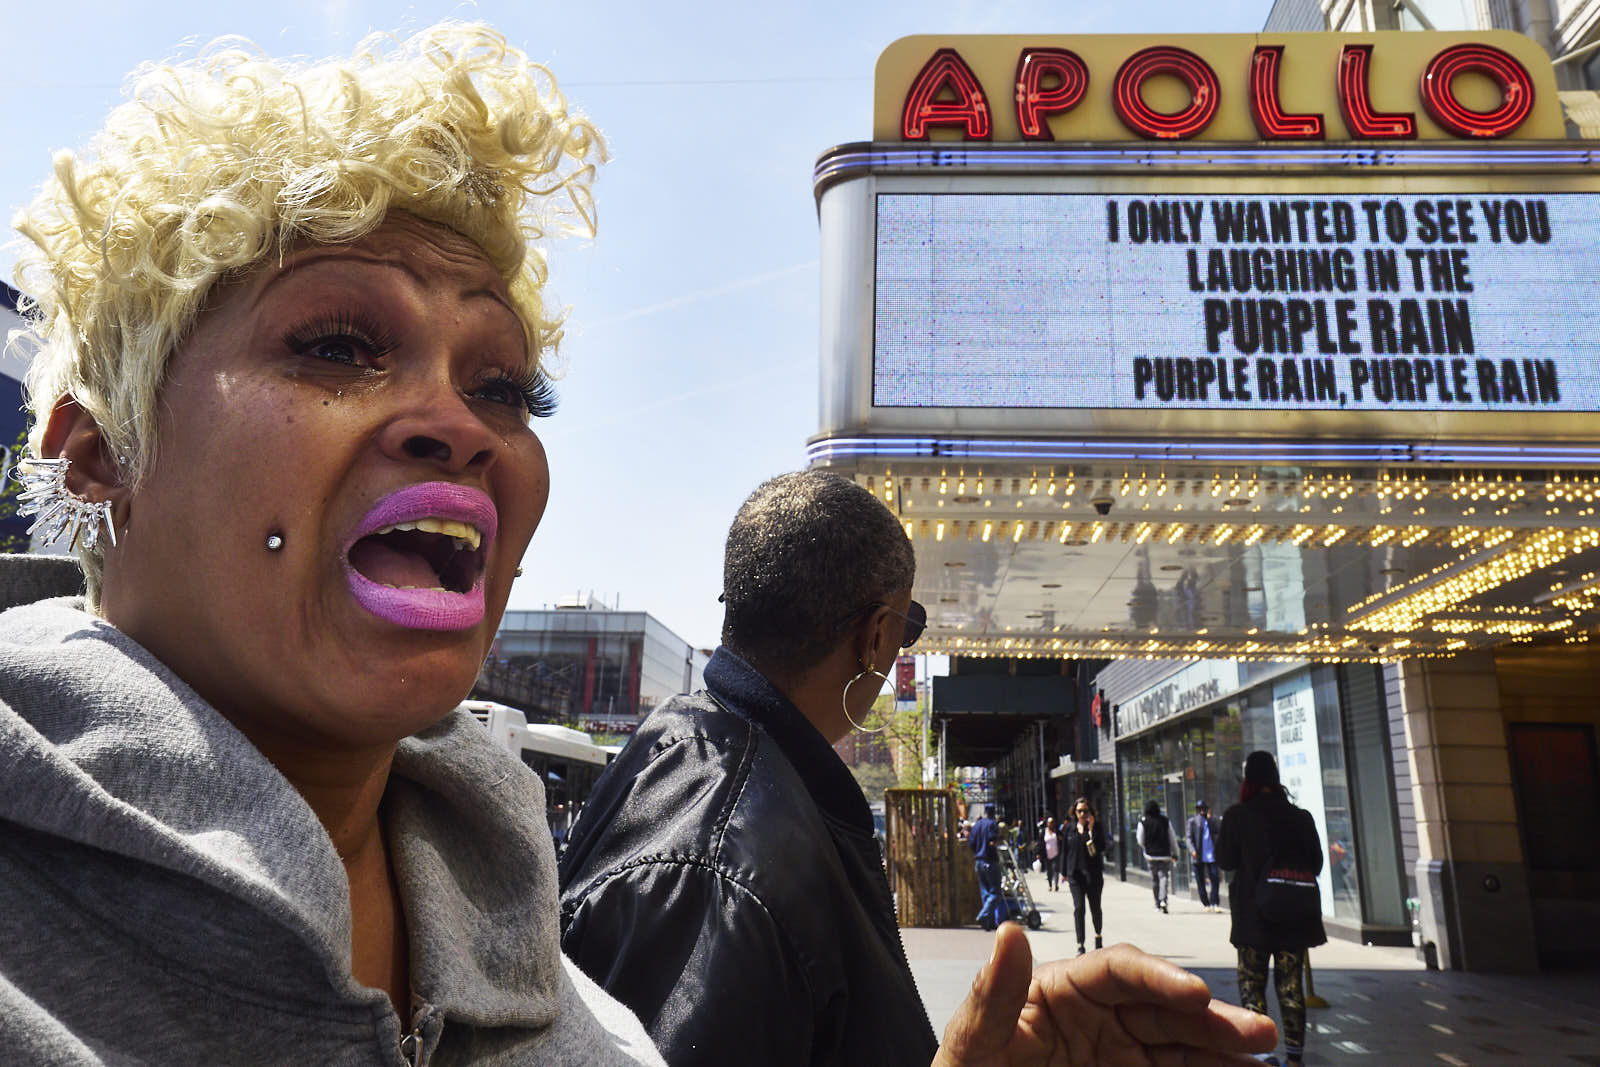 Caren Menardy, of Harlem, NY cries outside the Apollo Theatre after hearing about the death of musician Prince on Thursday, April 21, 2016 in New York, N.Y. Prince, the multi-talented musical genius who emerged from Minneapolis with a unparalleled funk-rock sound that made him a global megastar, died suddenly at his home.